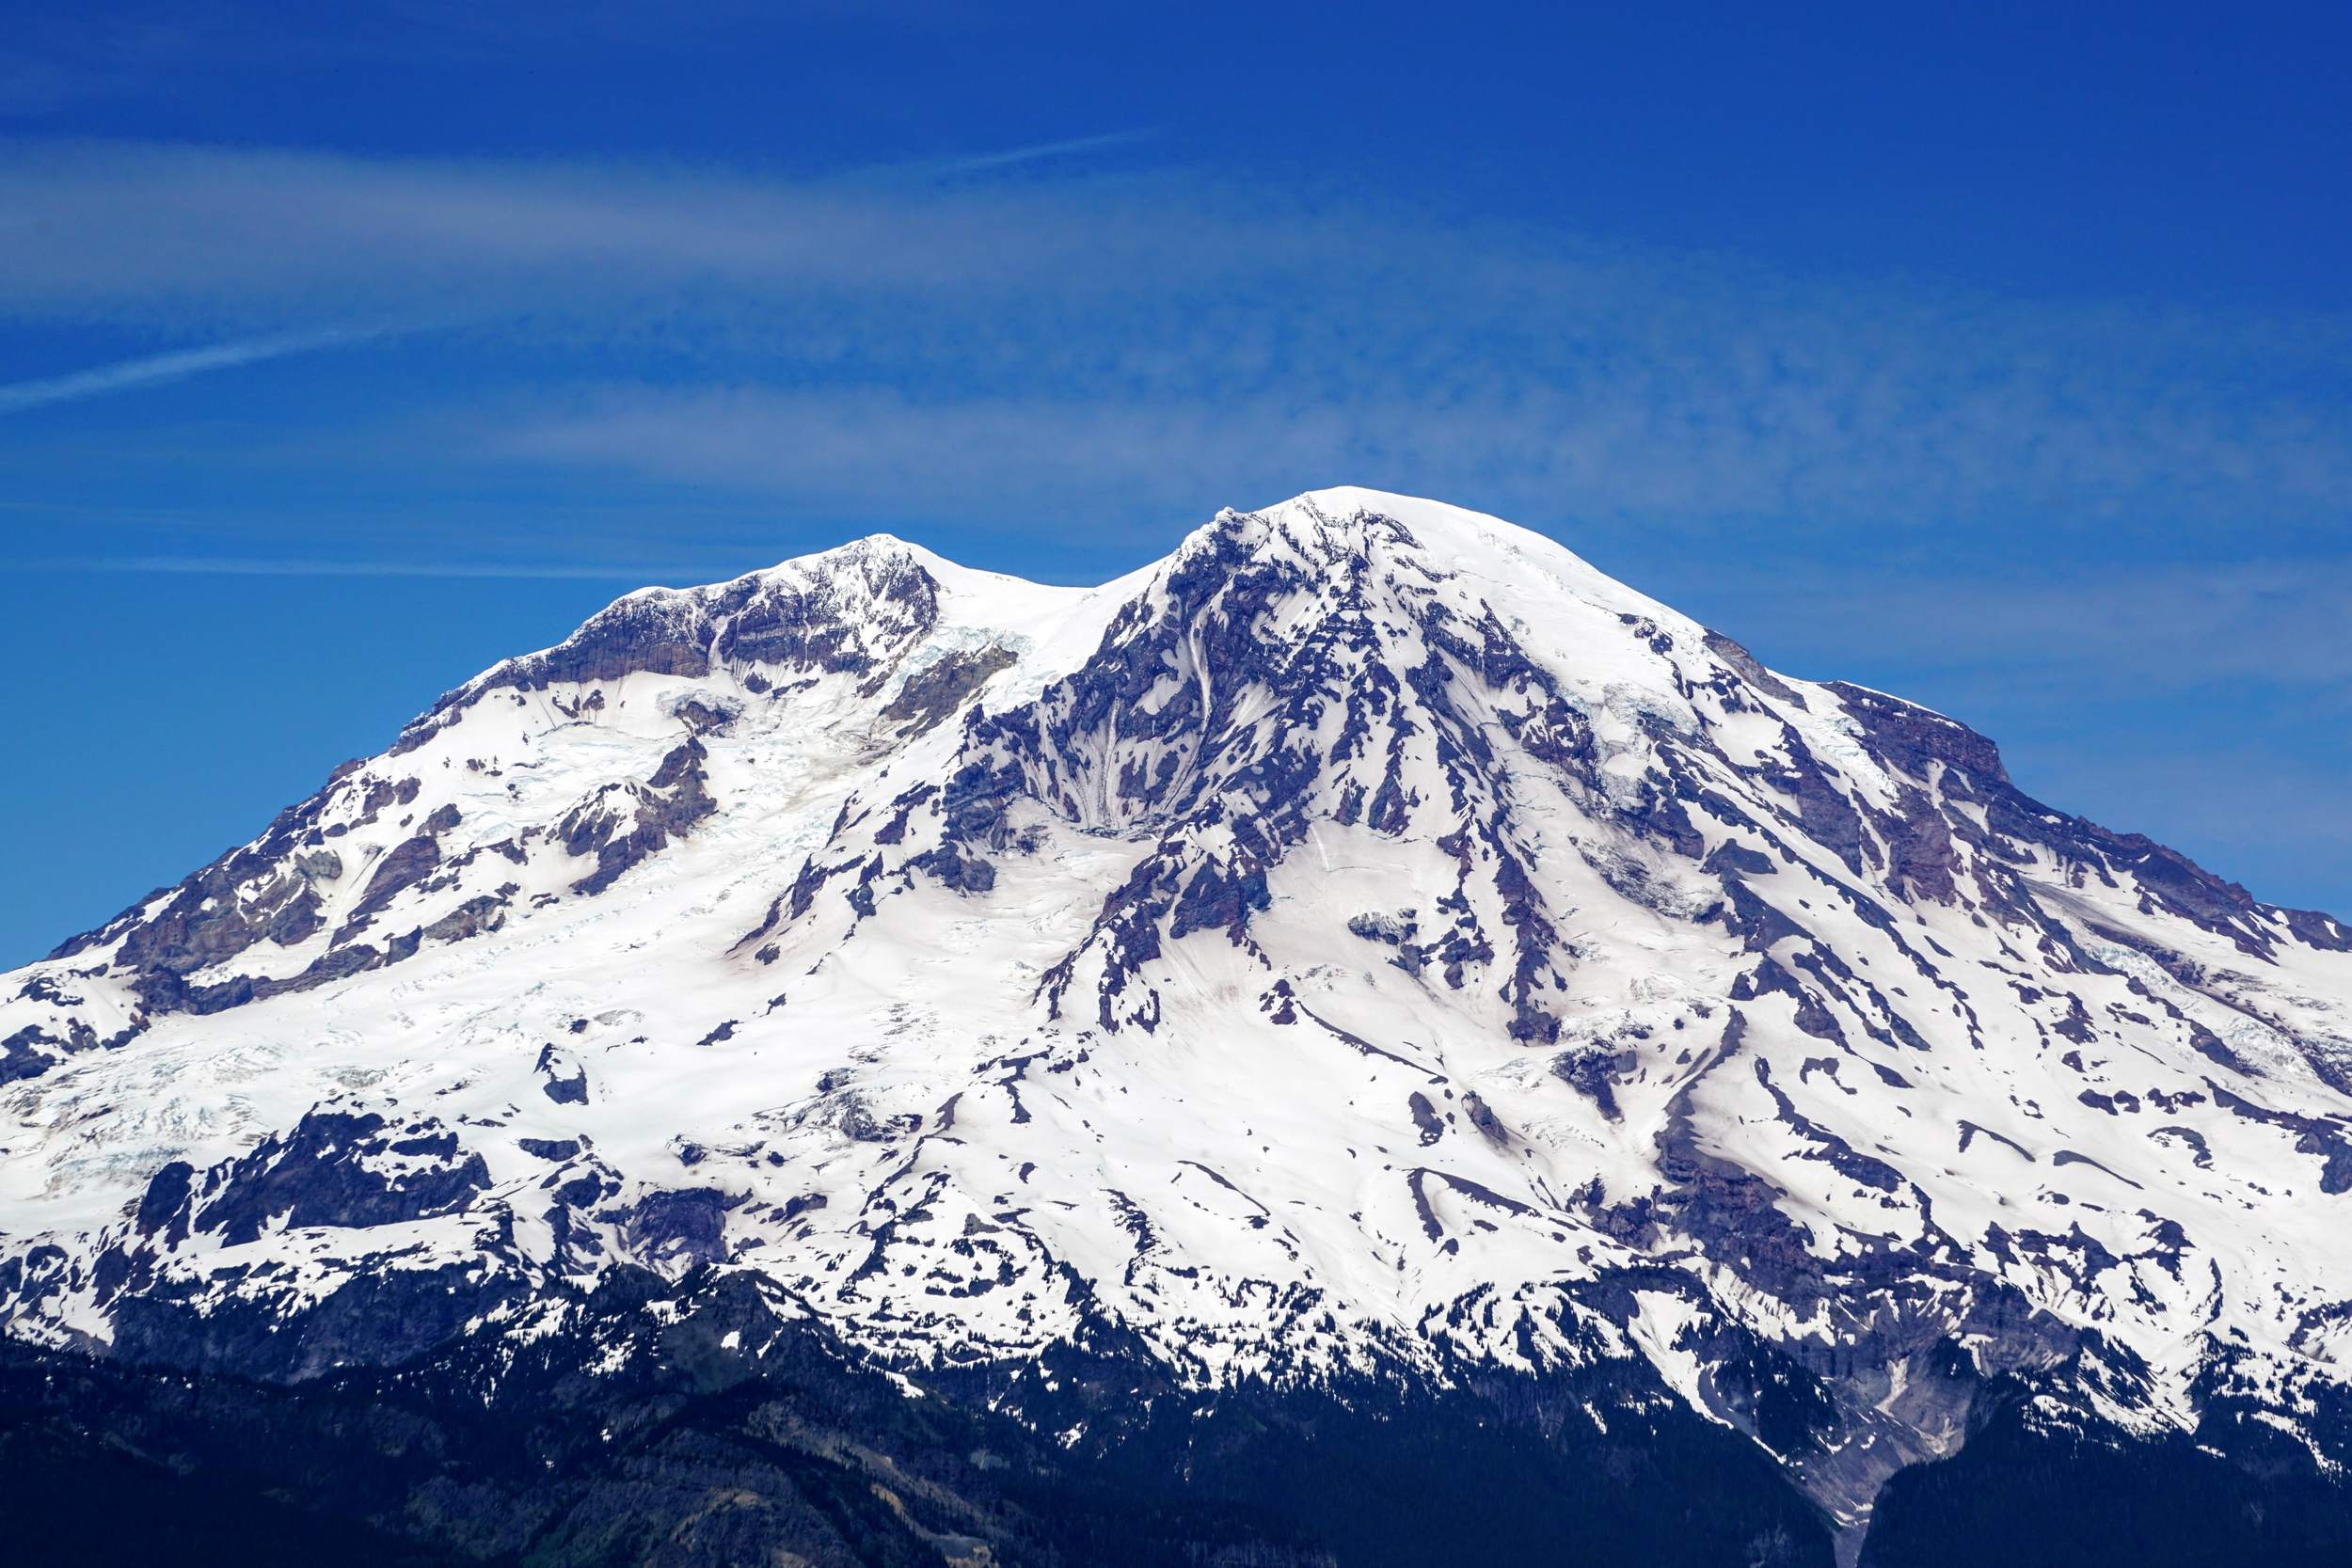 Up Close Mount Rainier from High Rock